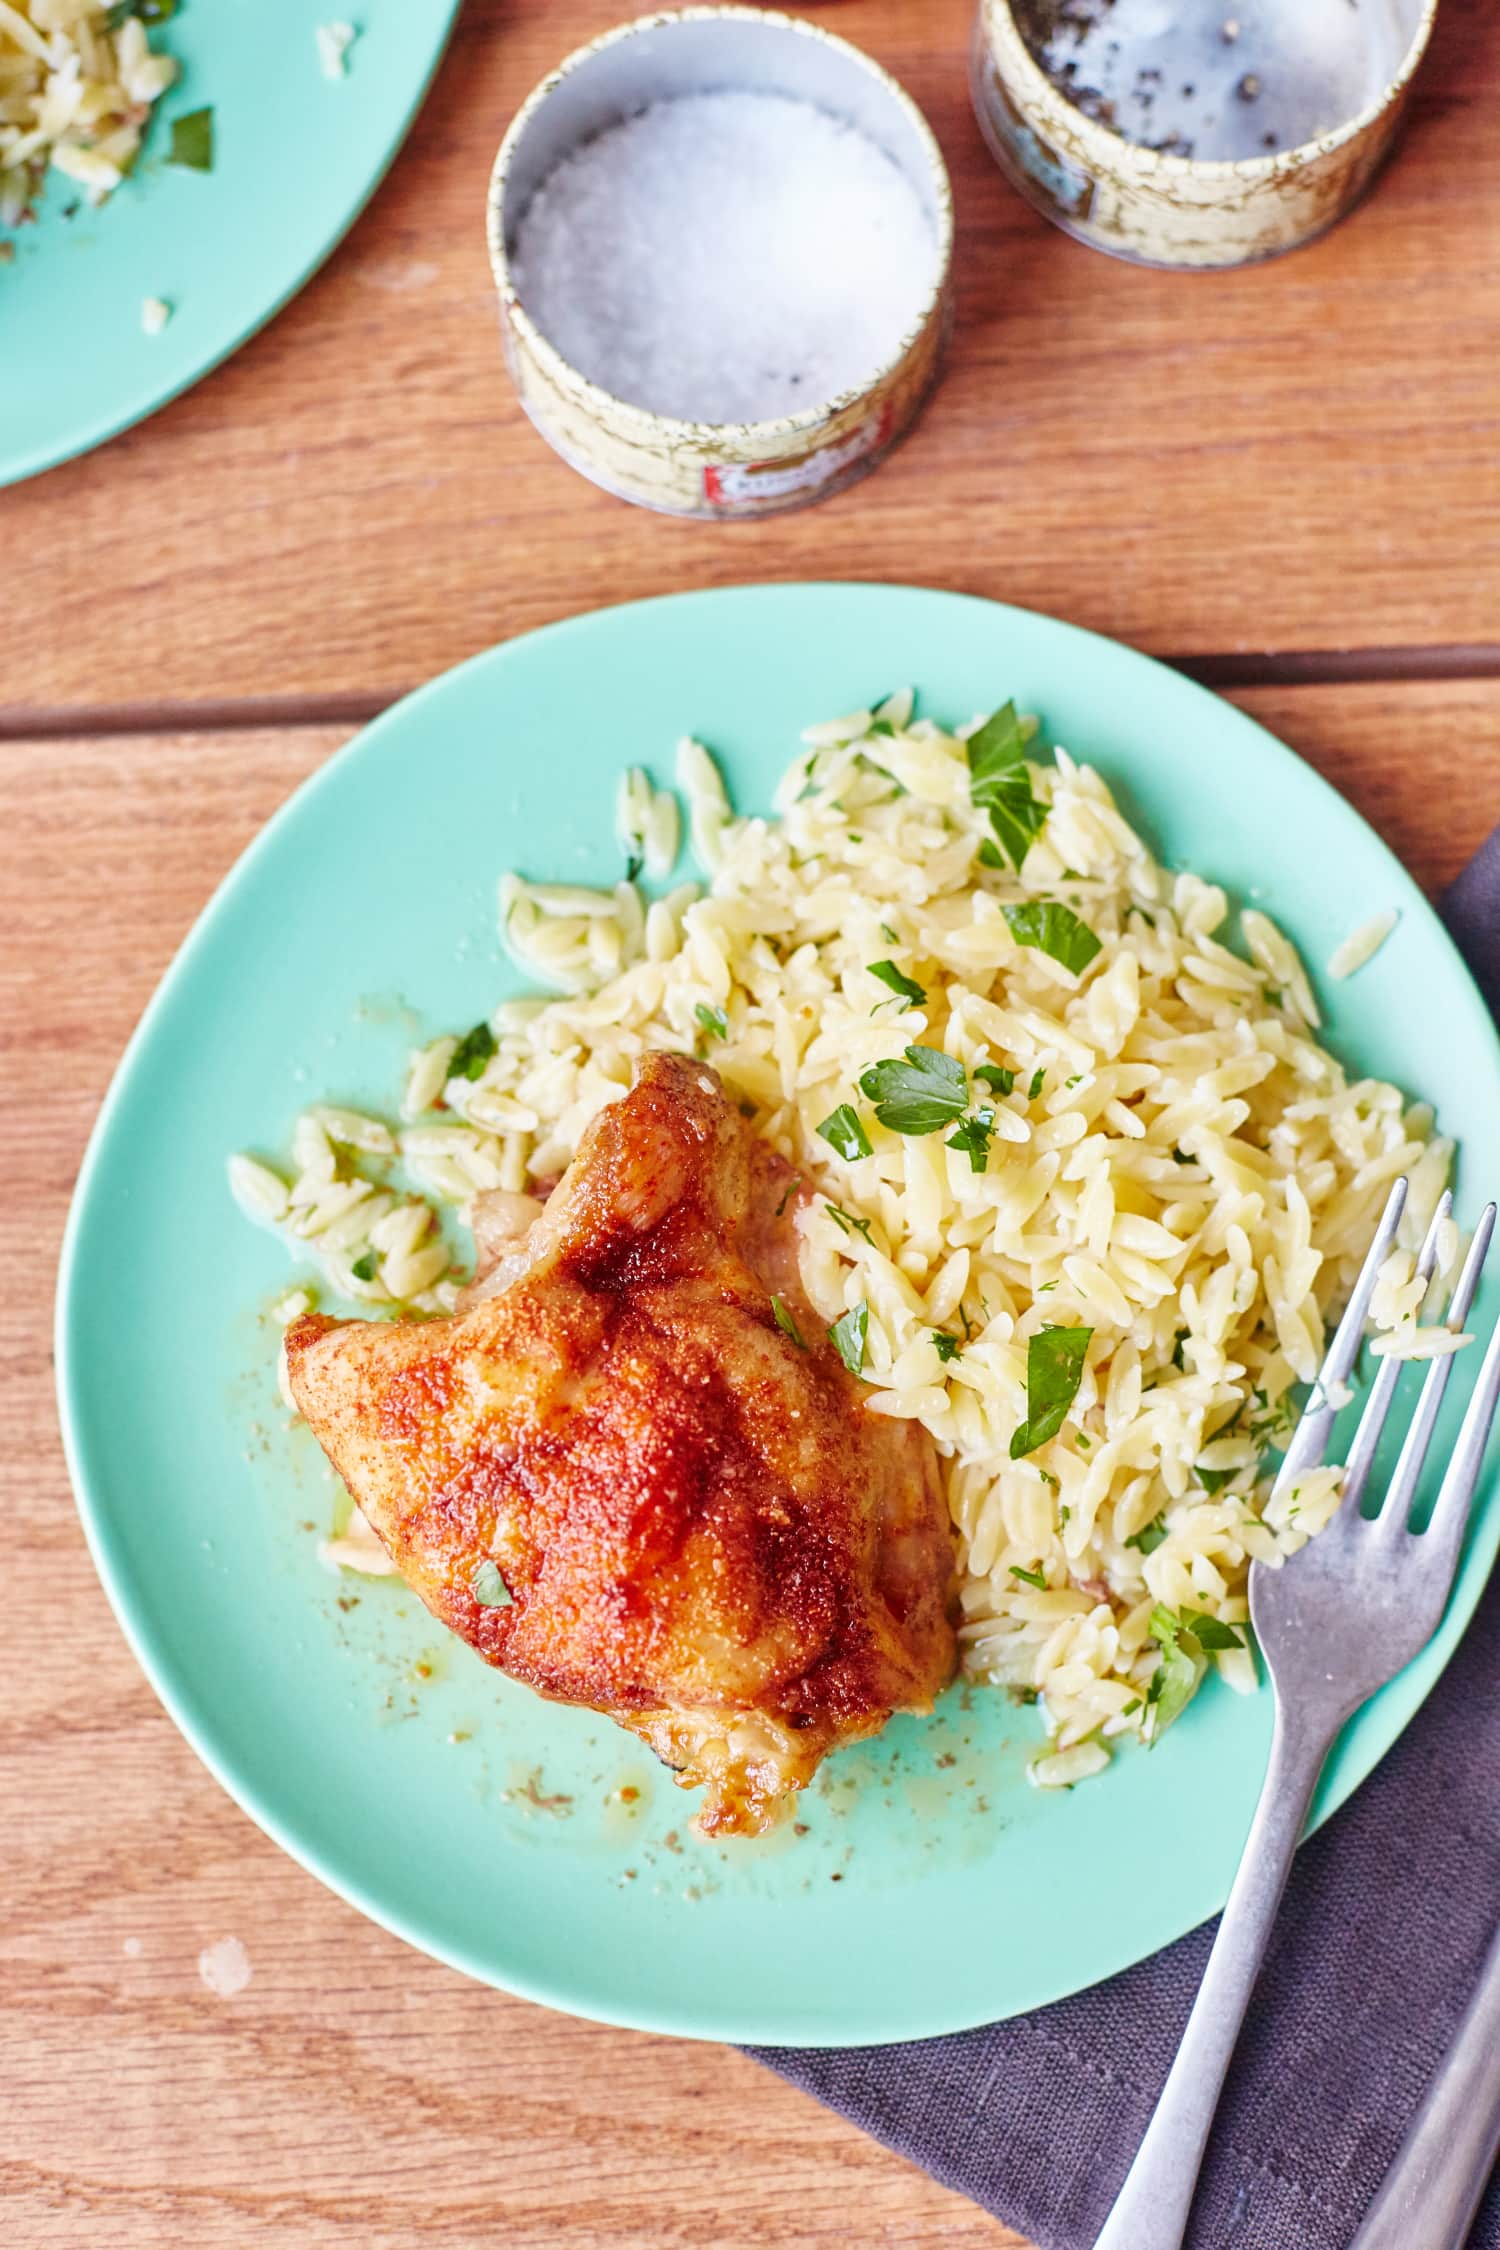 How To Make Crispy, Juicy Chicken Thighs in the Slow Cooker